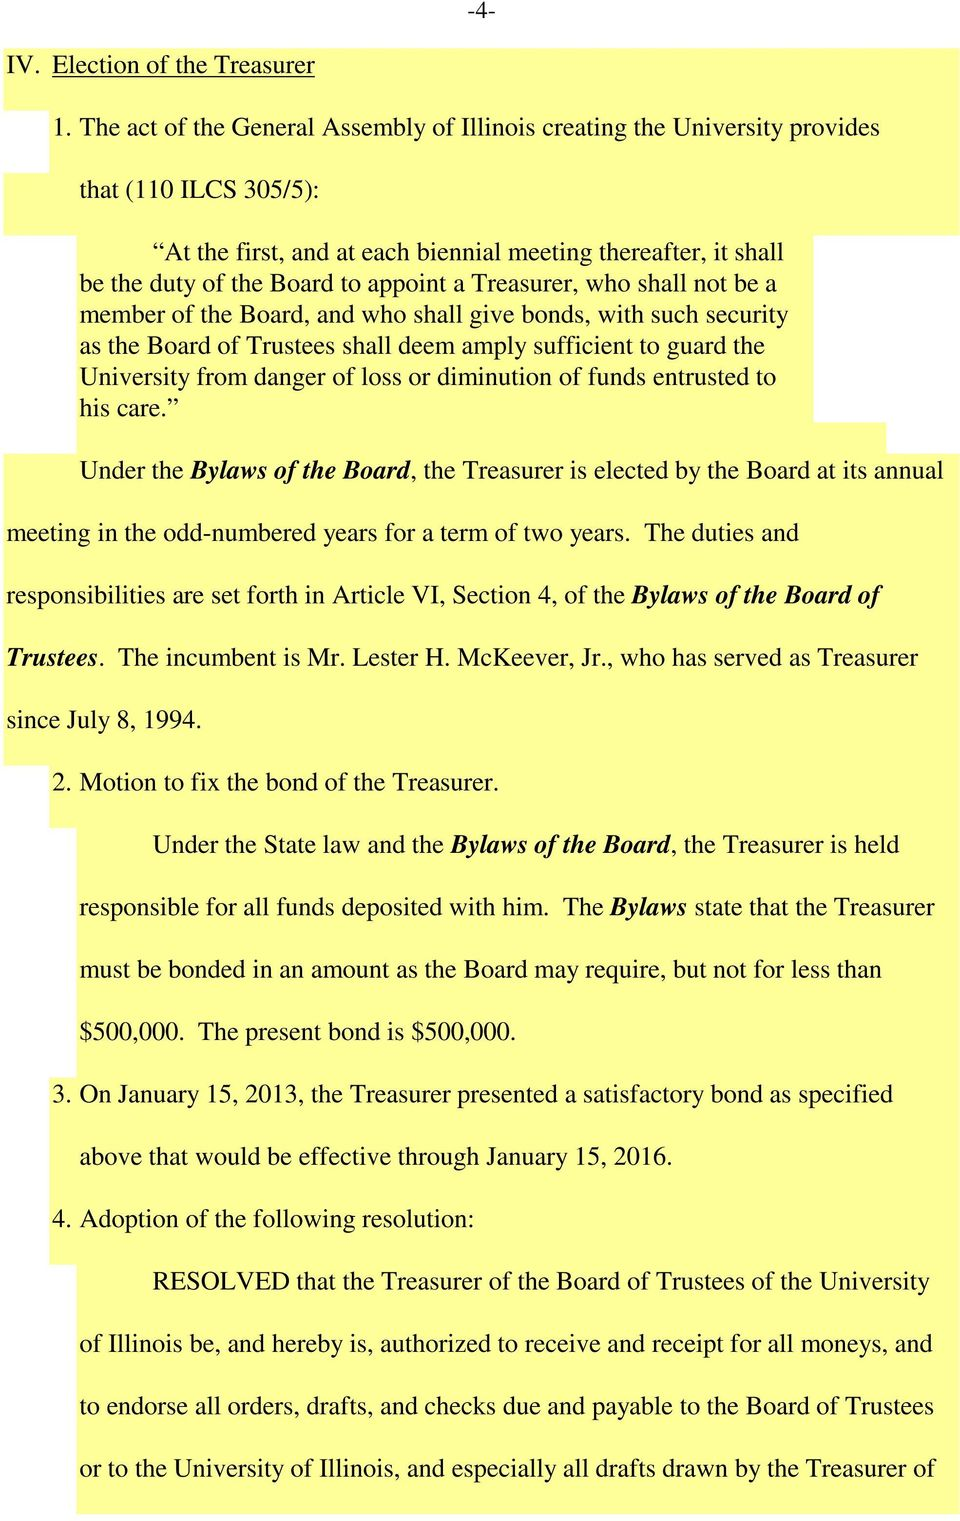 a Treasurer, who shall not be a member of the Board, and who shall give bonds, with such security as the Board of Trustees shall deem amply sufficient to guard the University from danger of loss or